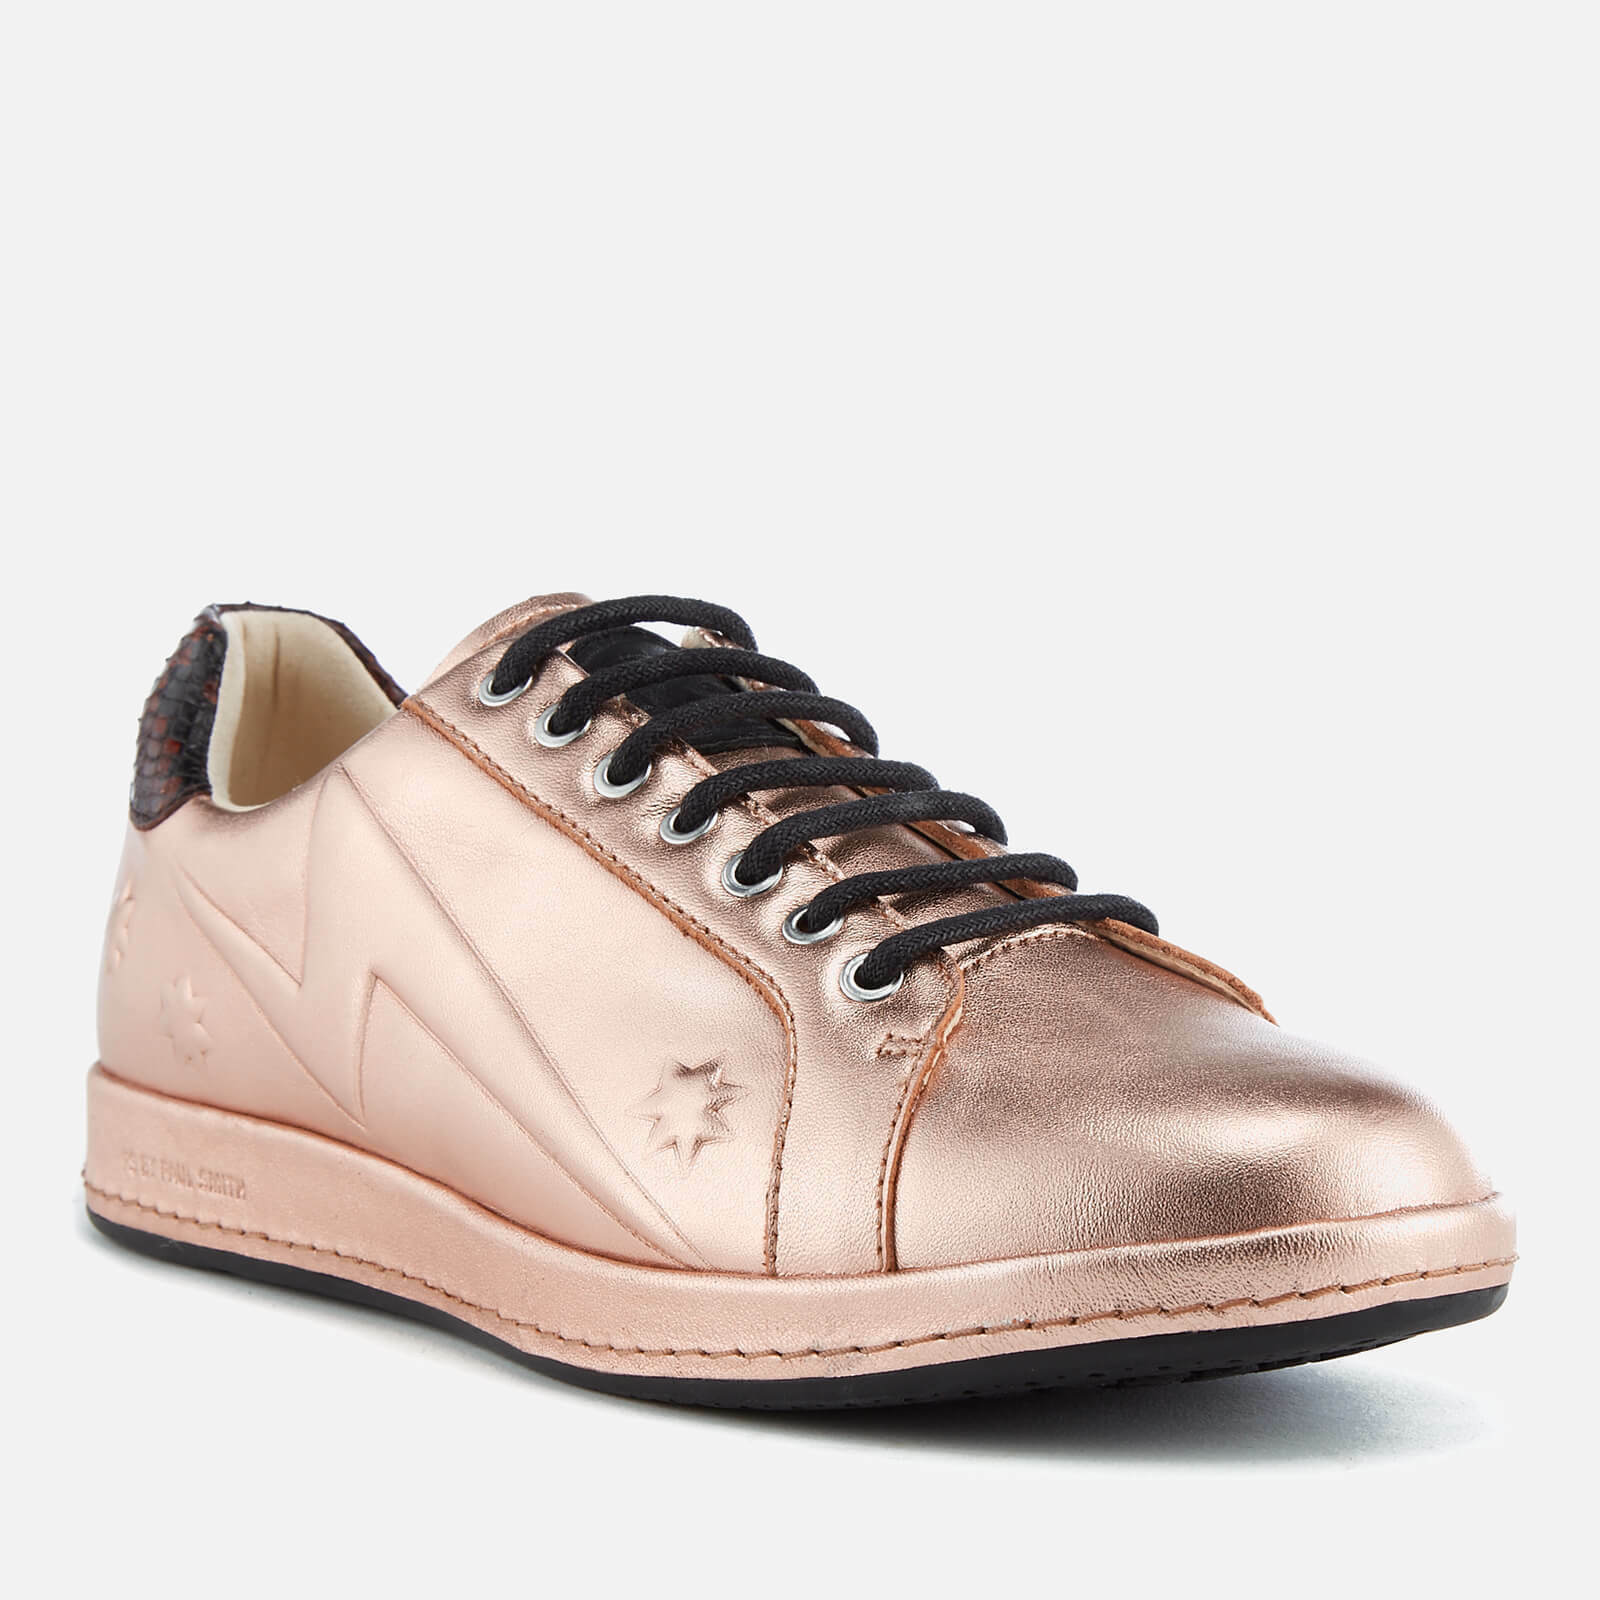 NEW PAUL SMITH PS pink gold gold gold Metallic Copper Star Embossed Leather Sneakers Flat d1950c